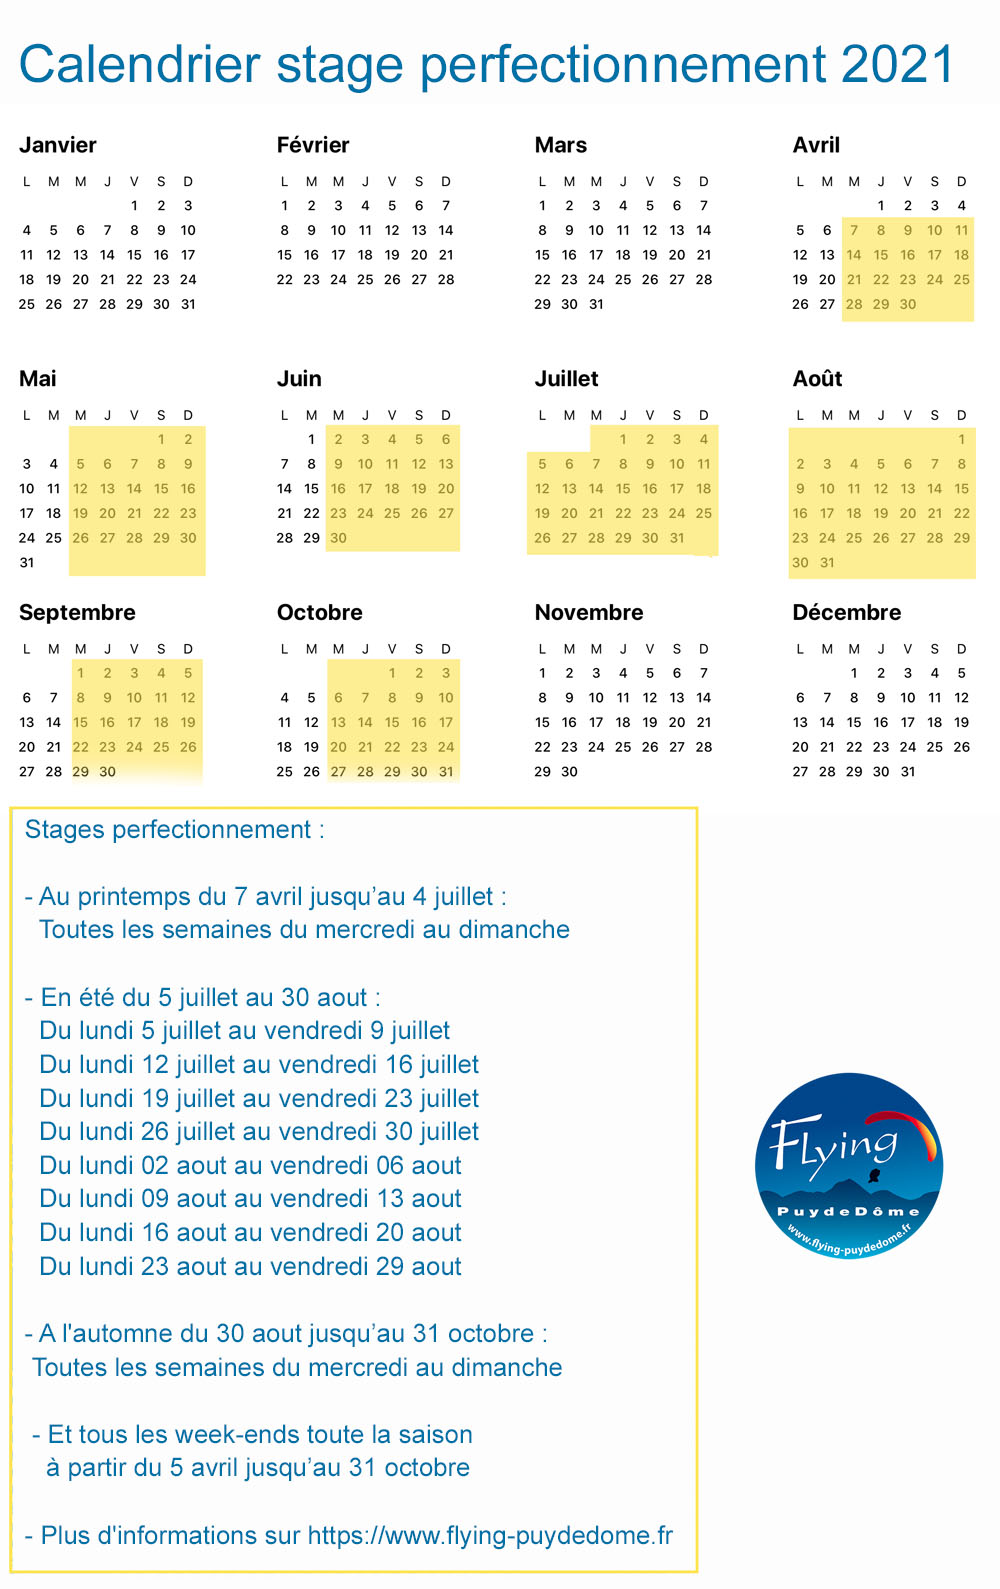 Calendrier stage perfectionnement 2021 FPDD